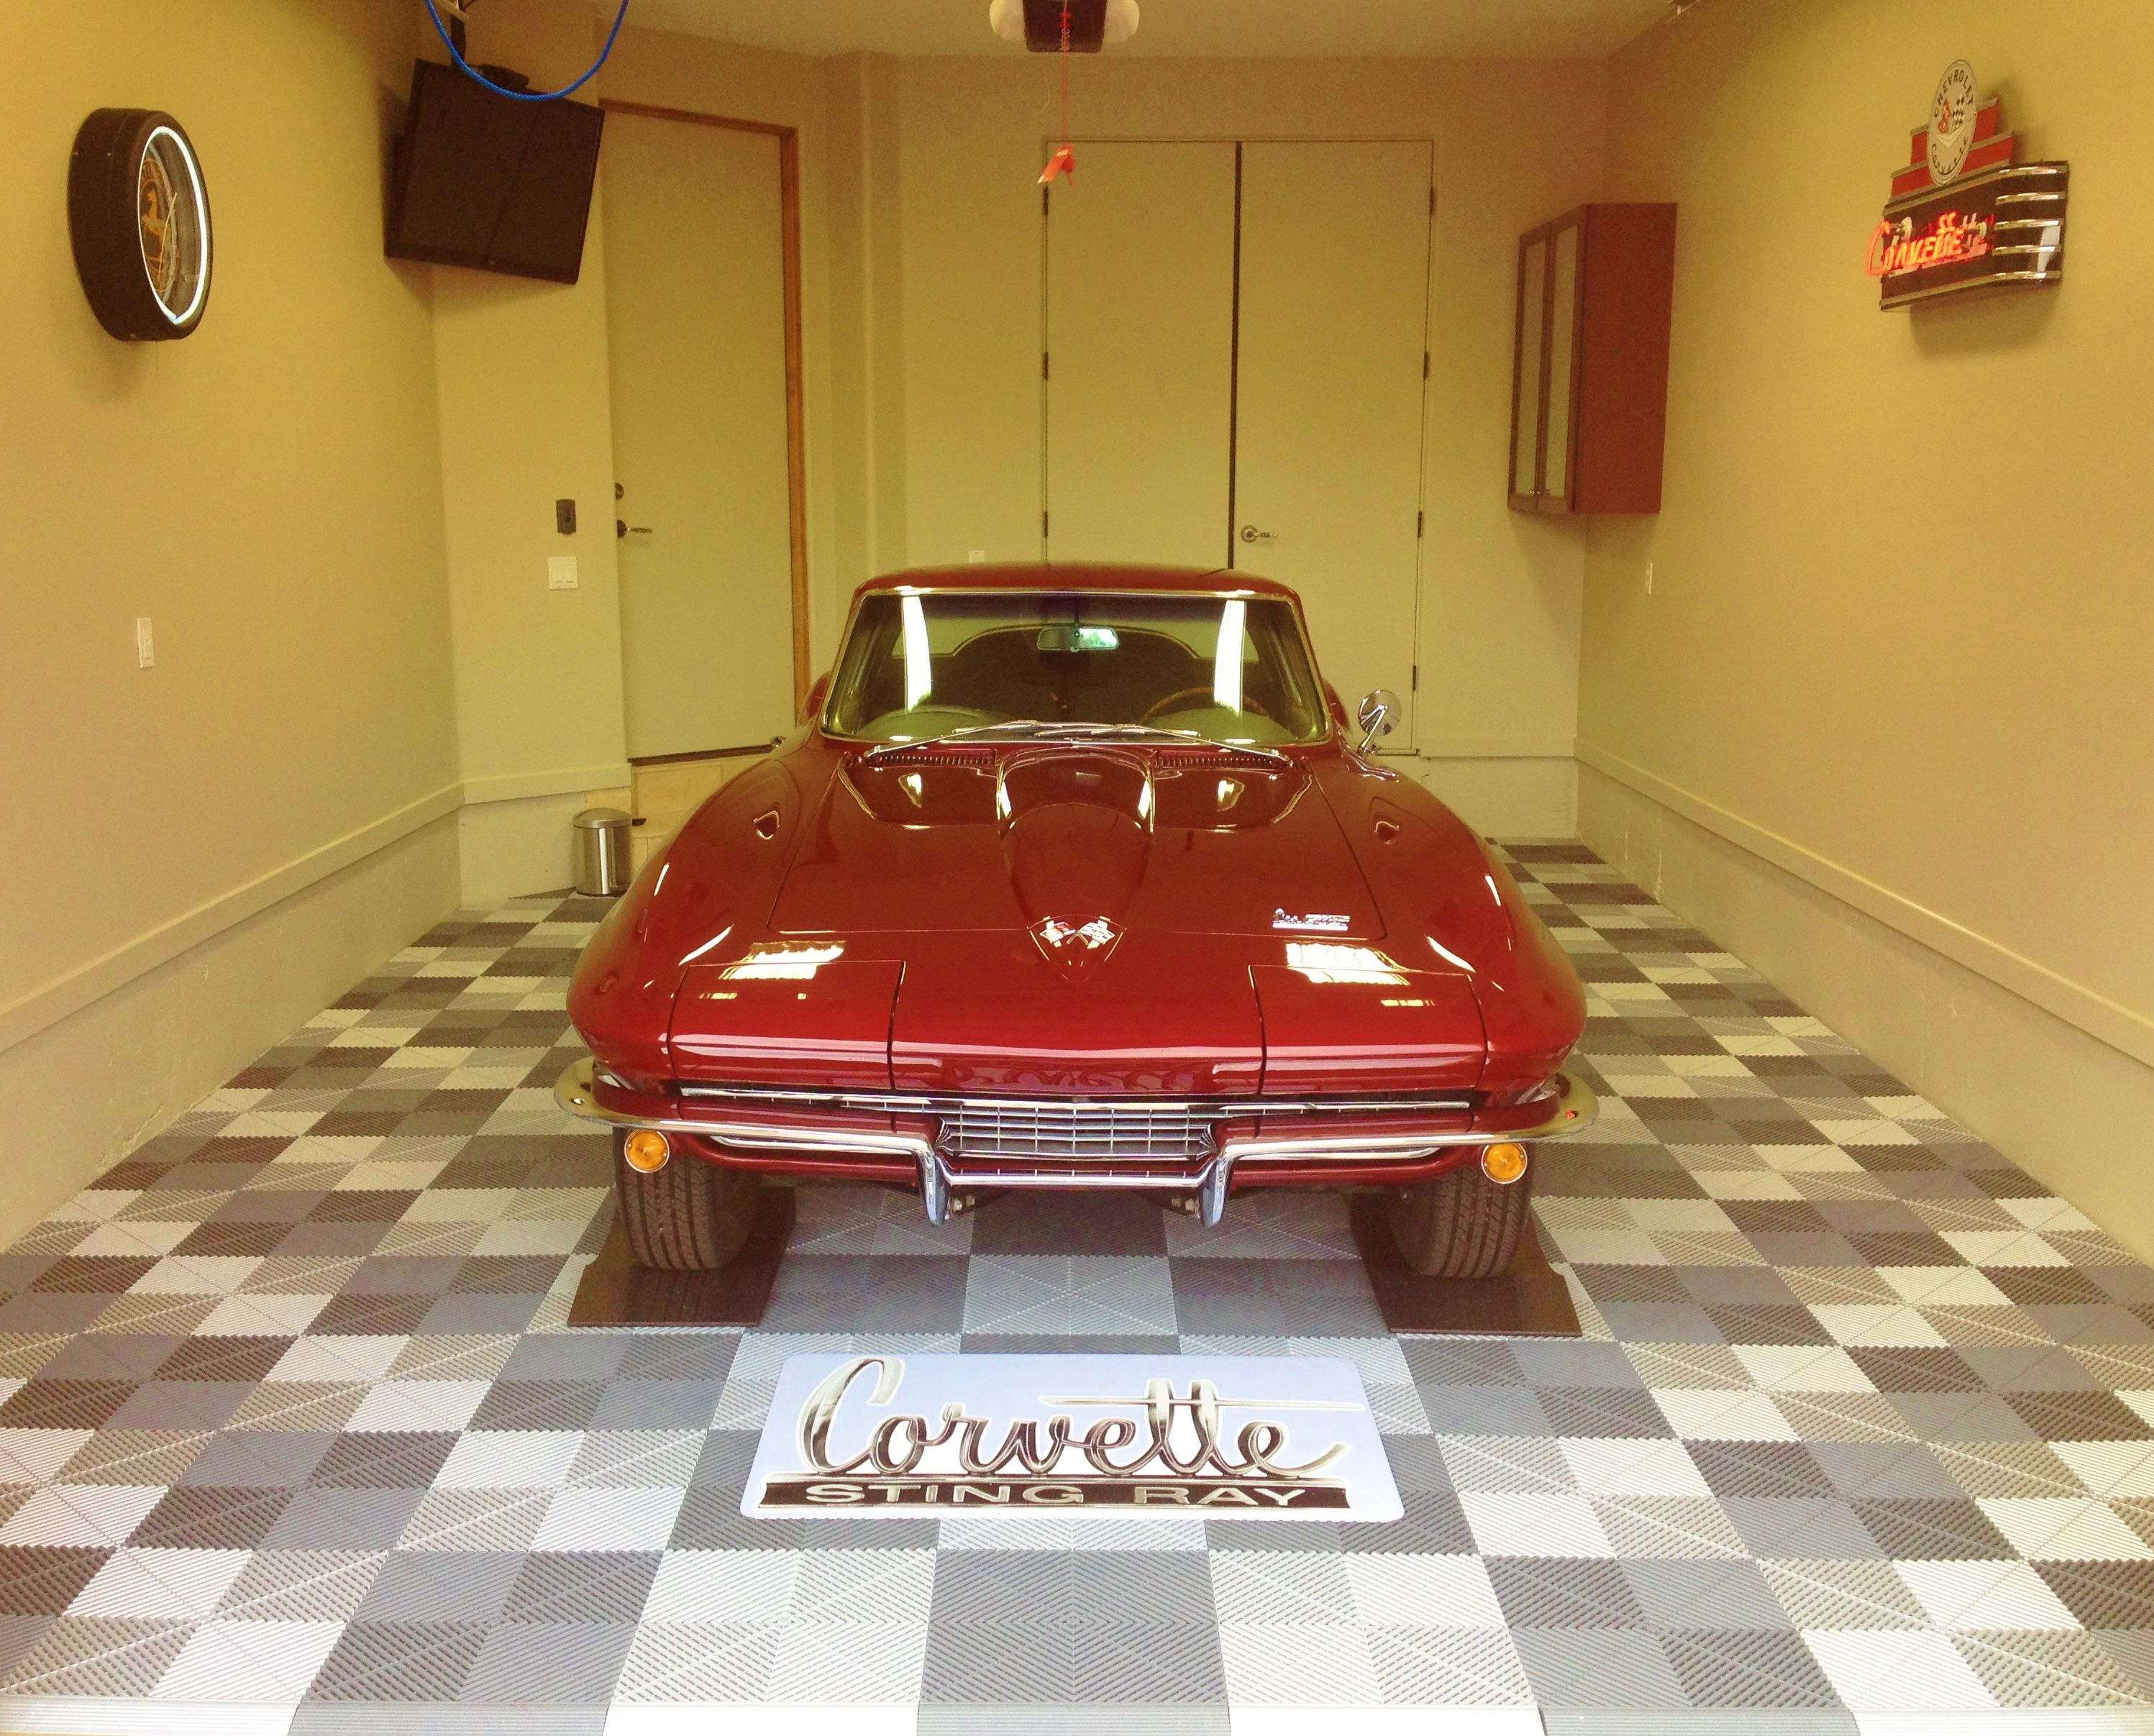 A classic corvette on our ribtrax floor garage